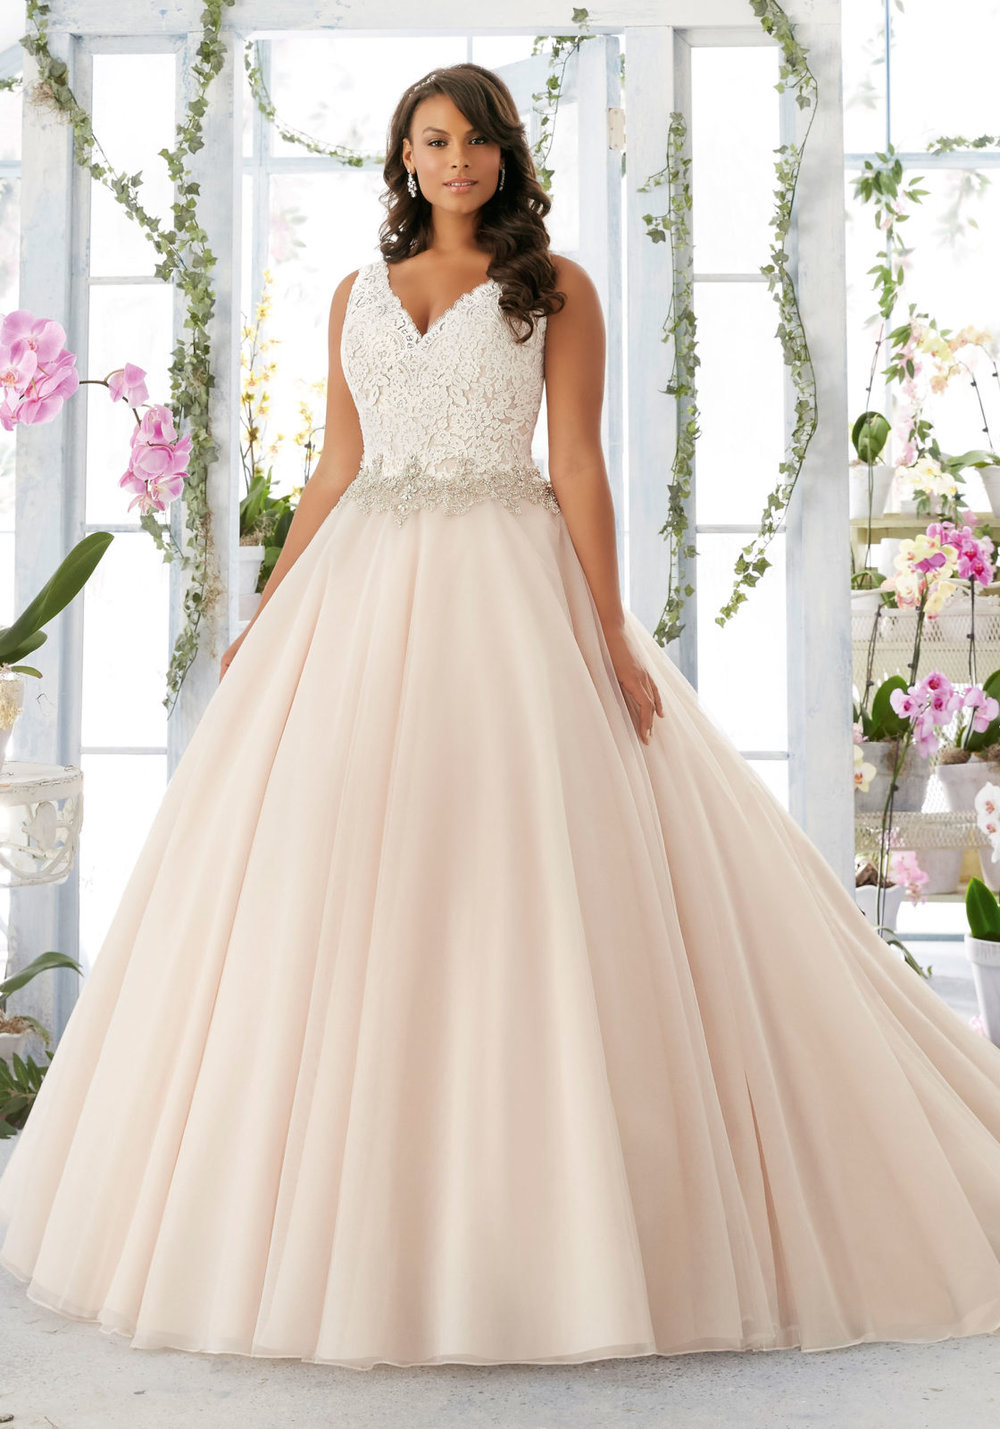 Embroidered Lace Bodice Edged with Beading on Tulle Wedding Dress by Morilee